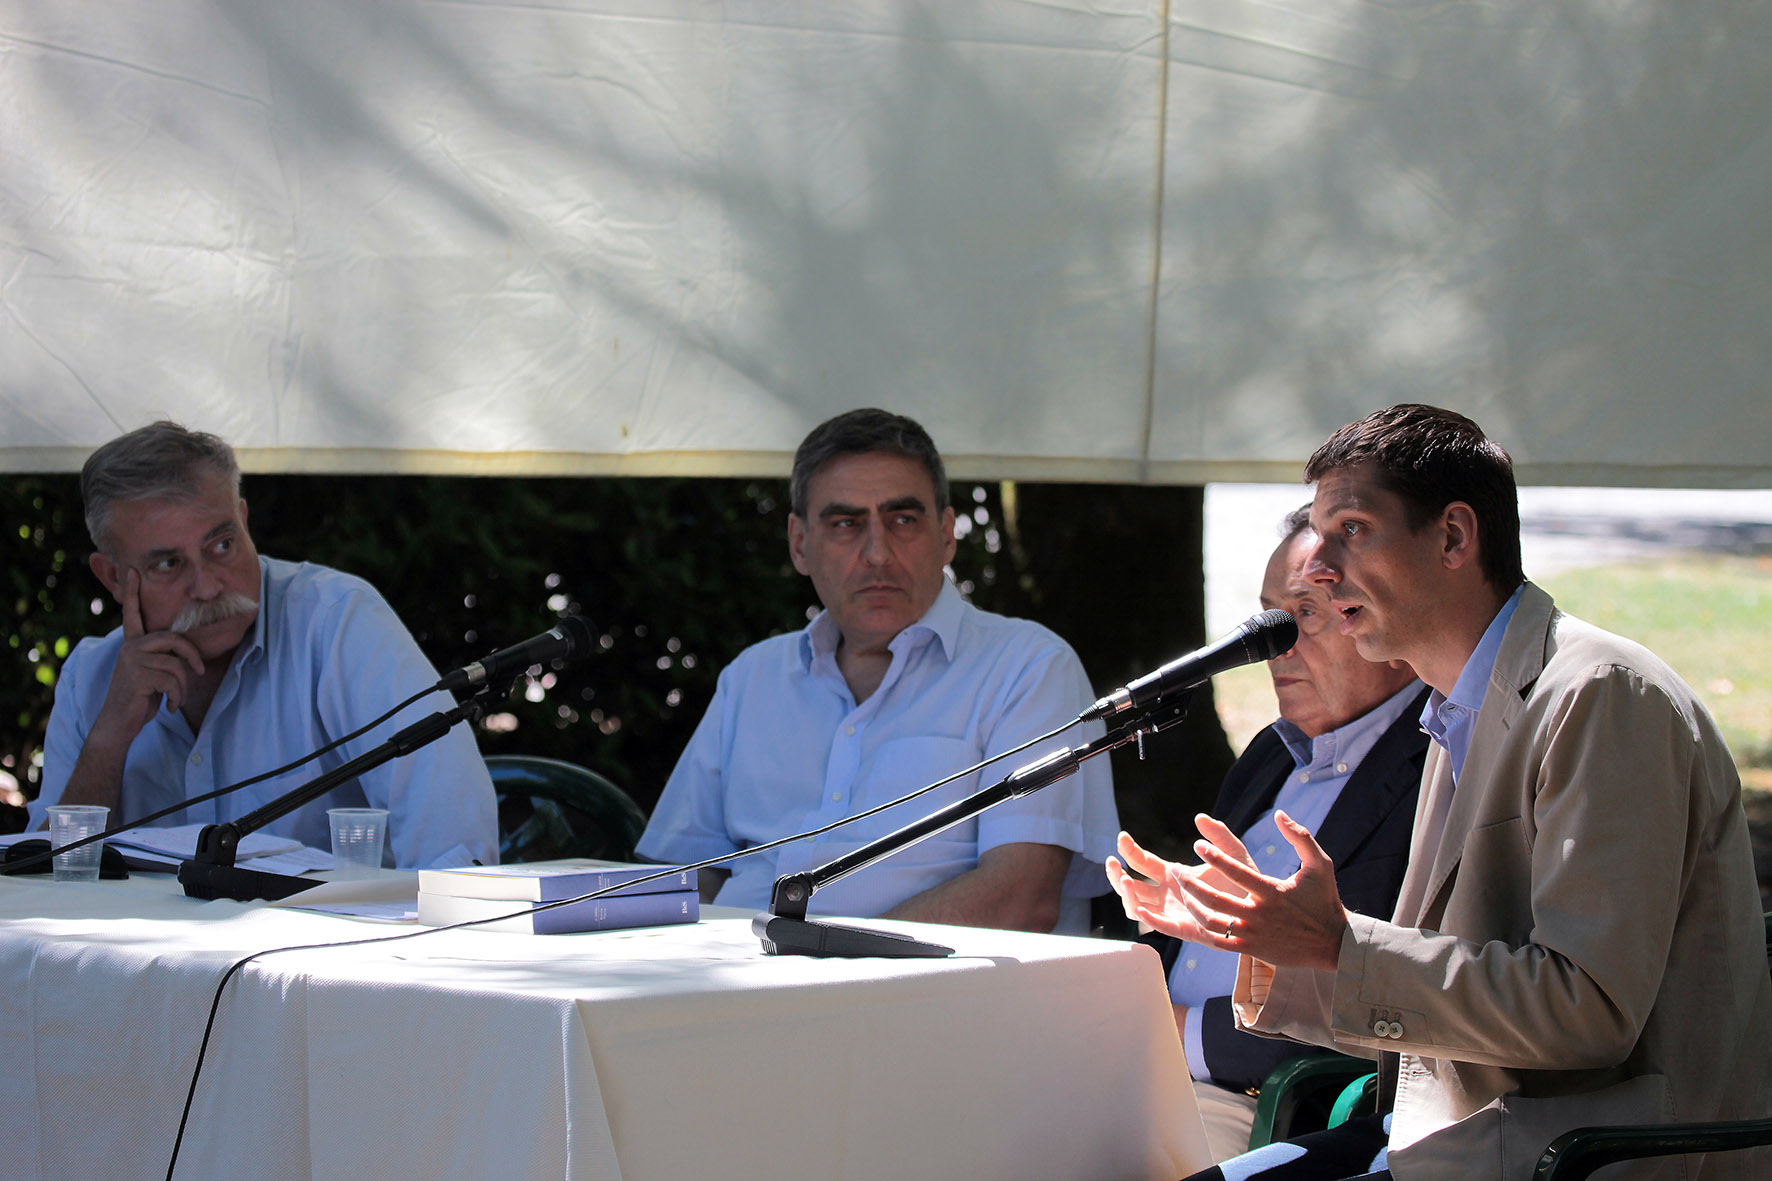 conferenza stampa 1